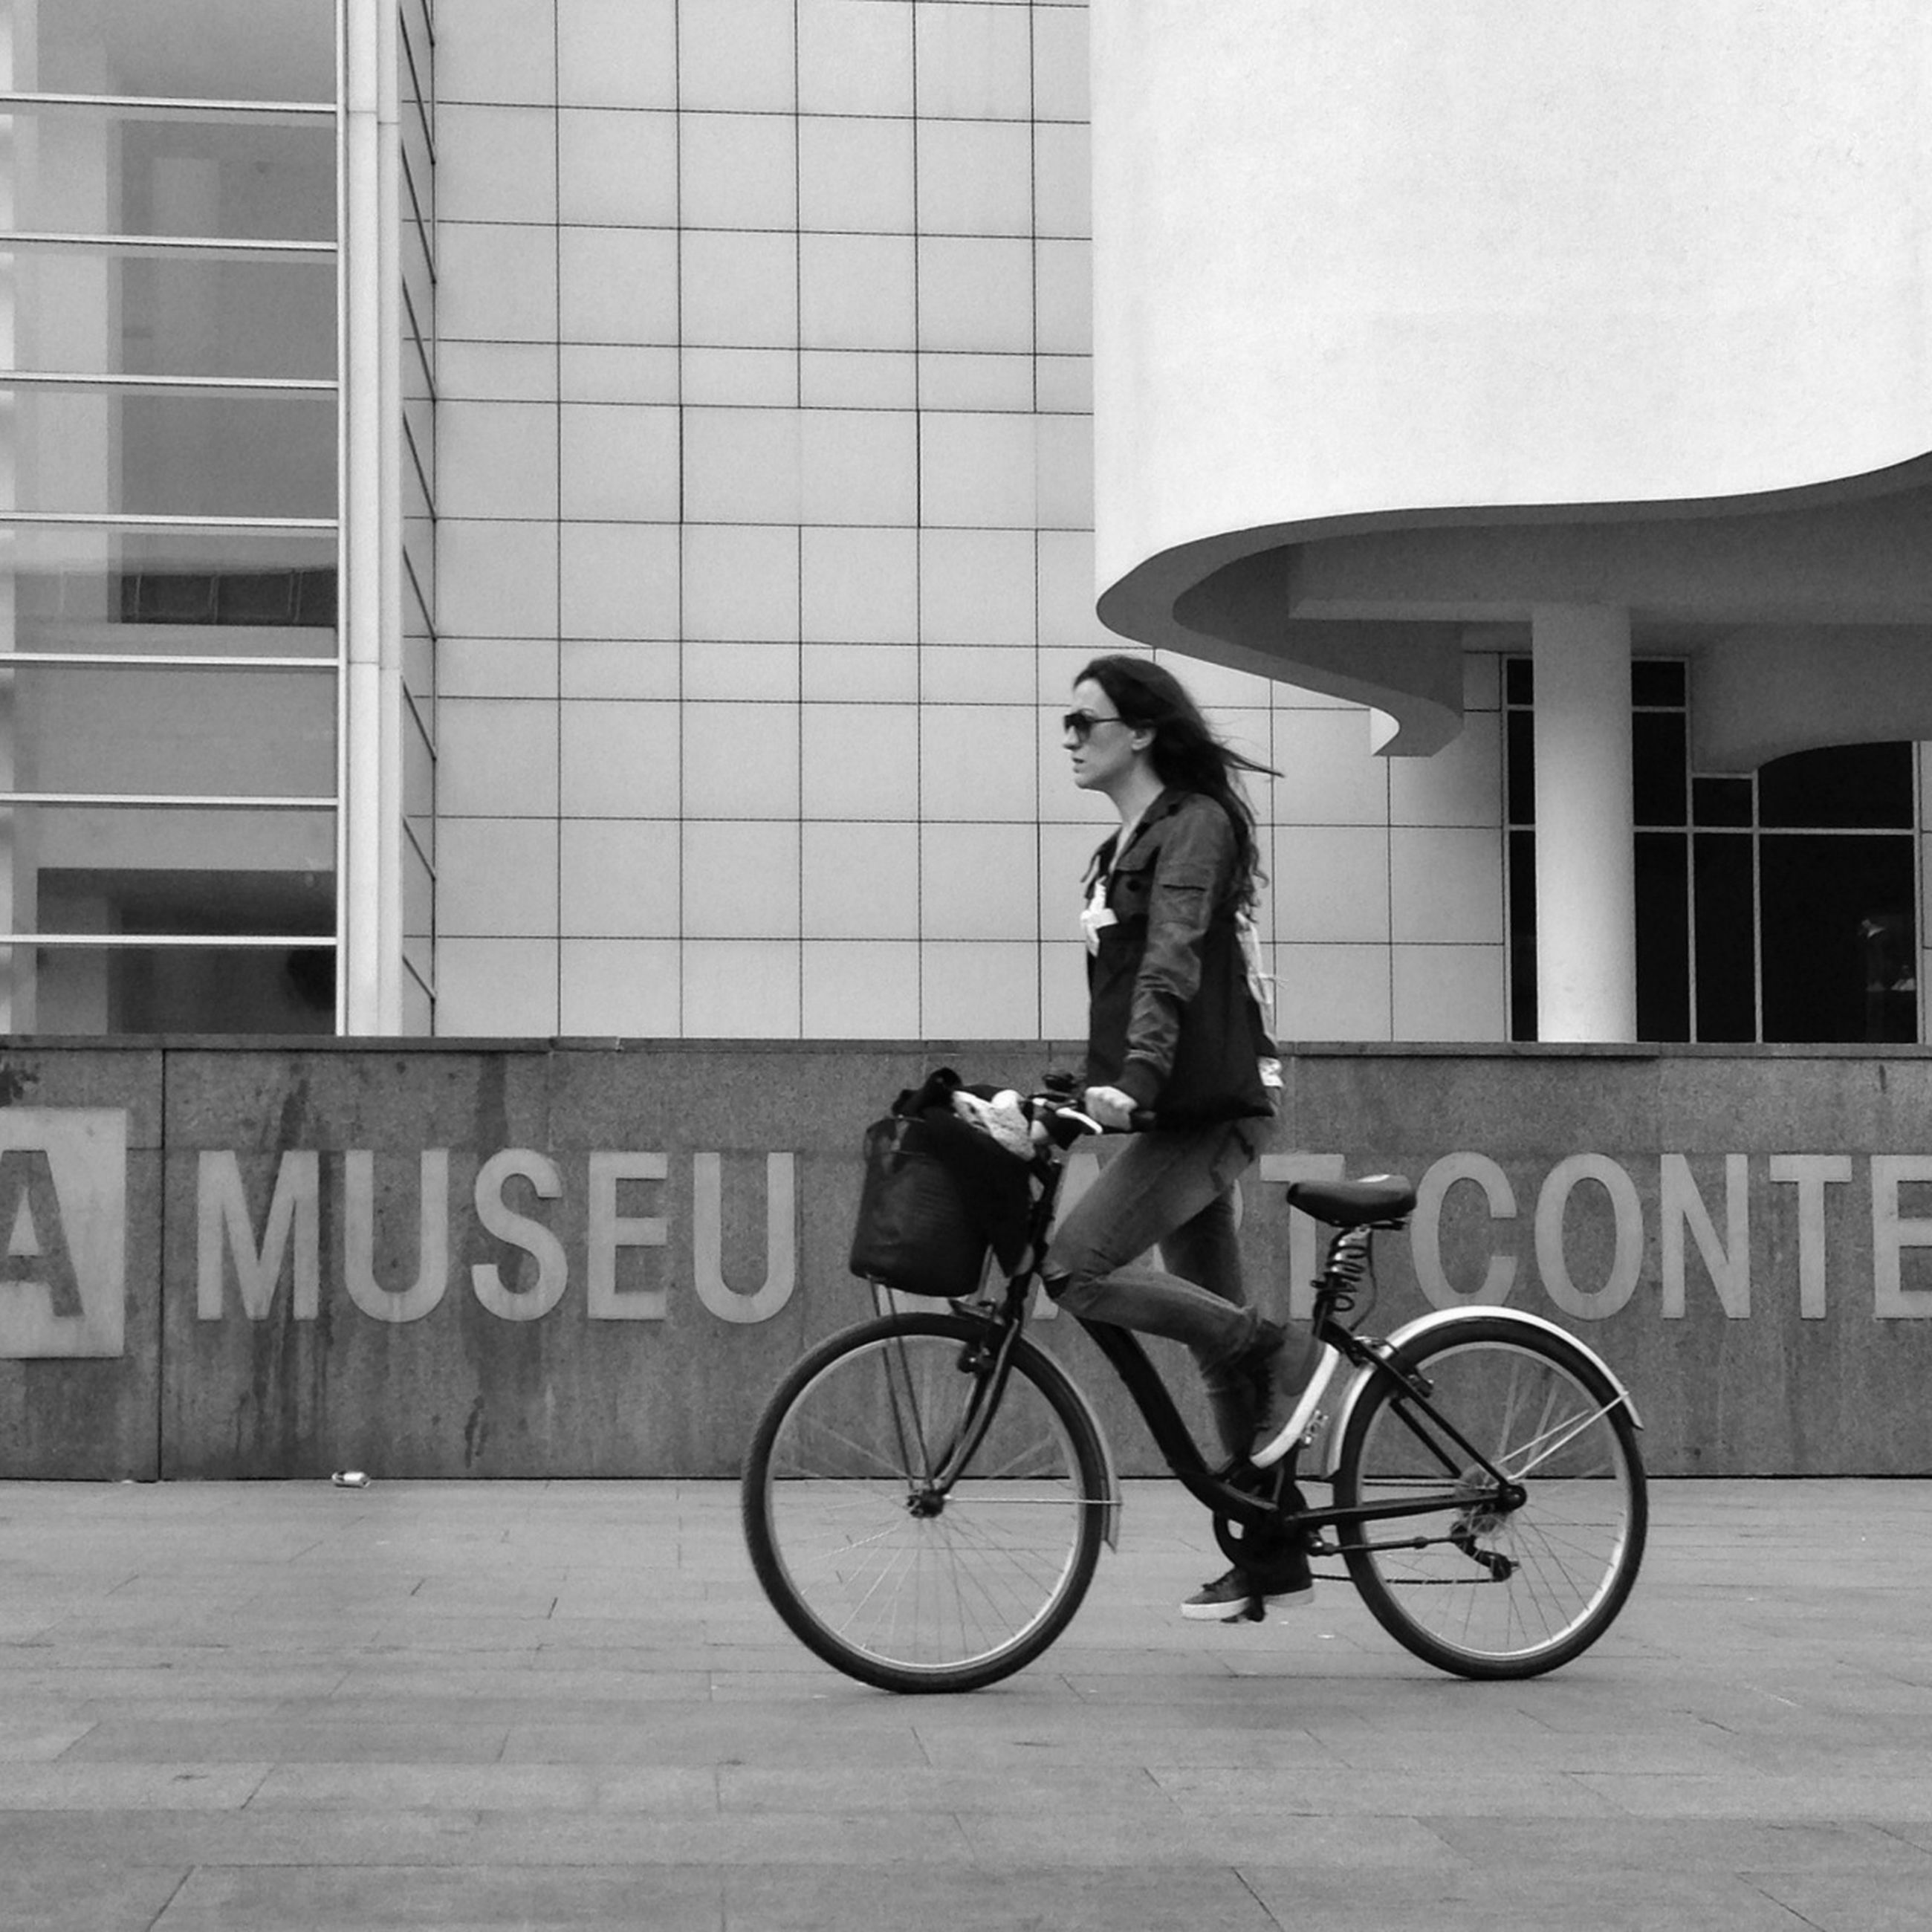 bicycle, transportation, mode of transport, architecture, land vehicle, building exterior, built structure, men, riding, full length, lifestyles, side view, stationary, leisure activity, parking, street, parked, city